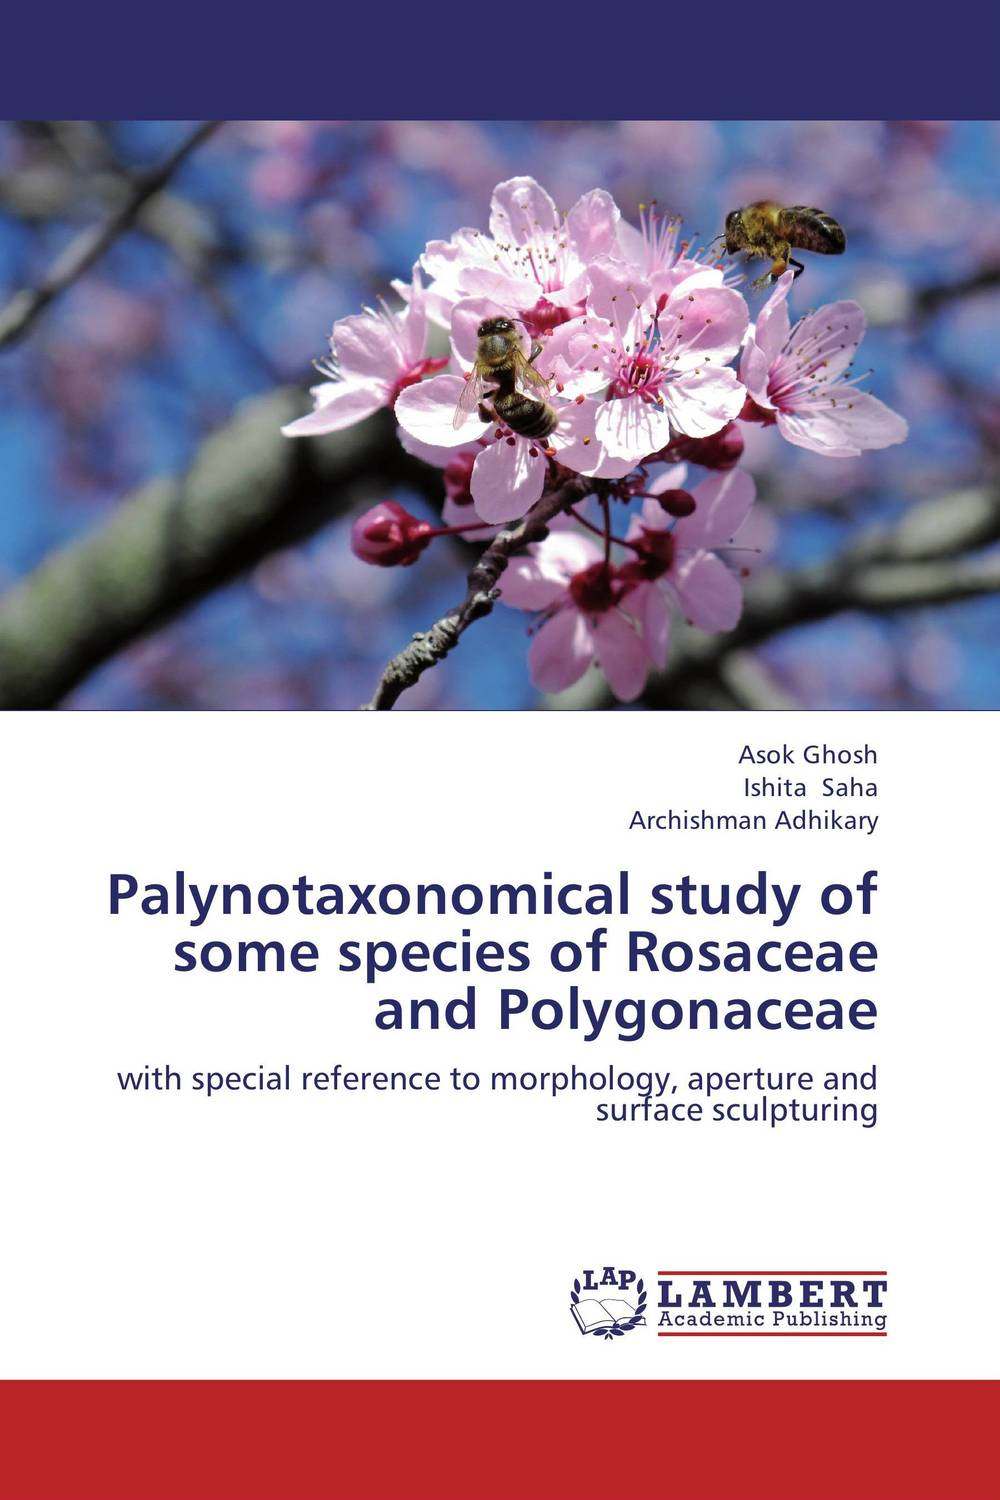 Palynotaxonomical study of some species of Rosaceae and Polygonaceae airborne pollen allergy